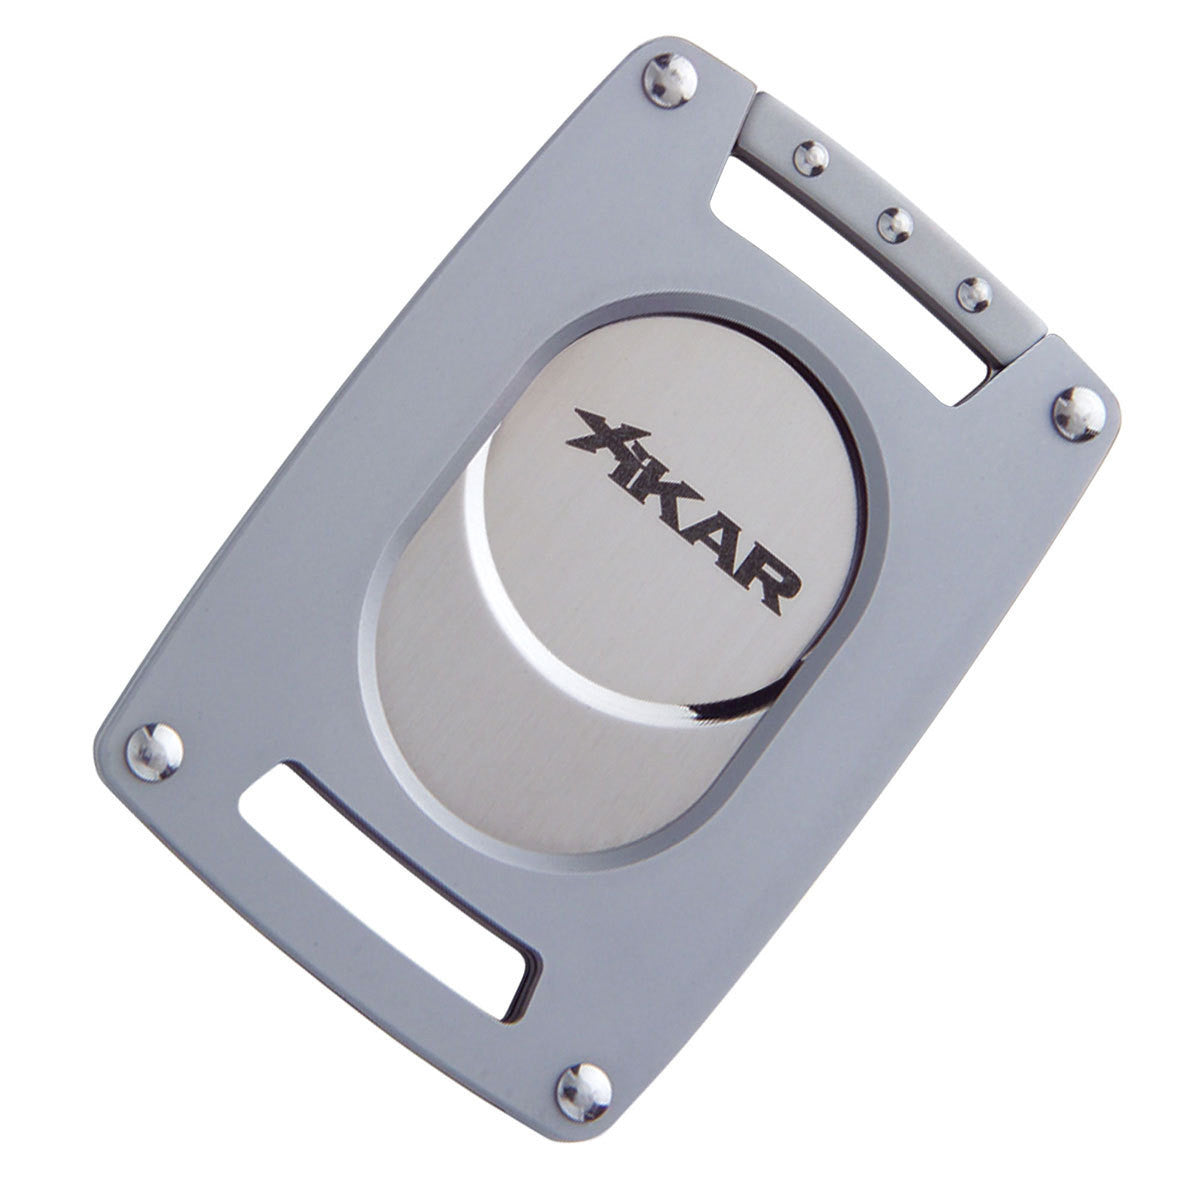 Xikar Ultra Slim Cigar Cutter and Lighter Silver Gift Set